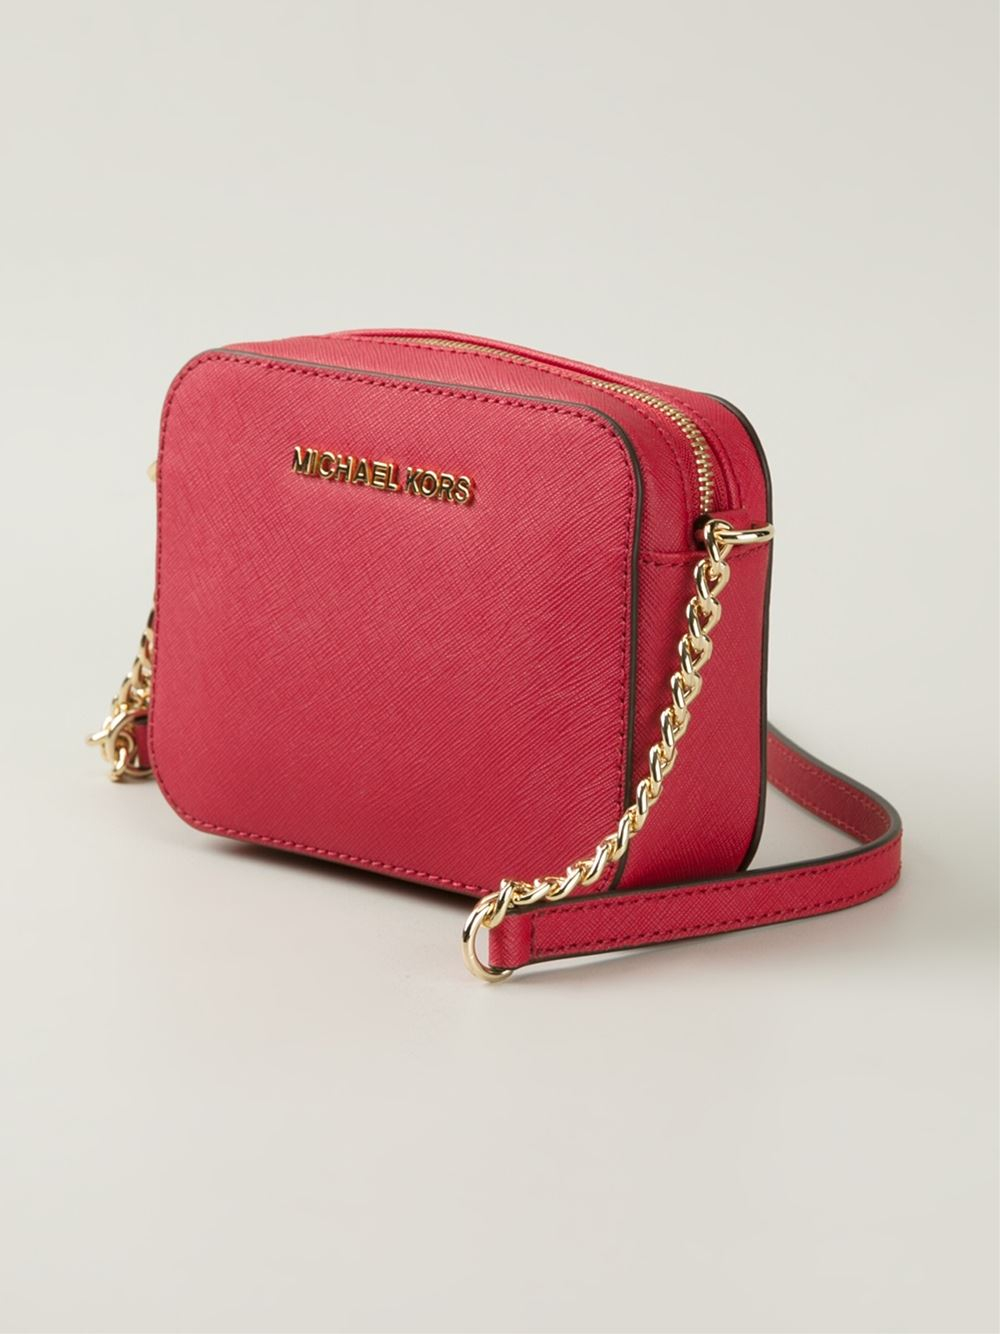 712e786bc218 Michael Kors Jet Set Crossbody Bag Red | Stanford Center for ...